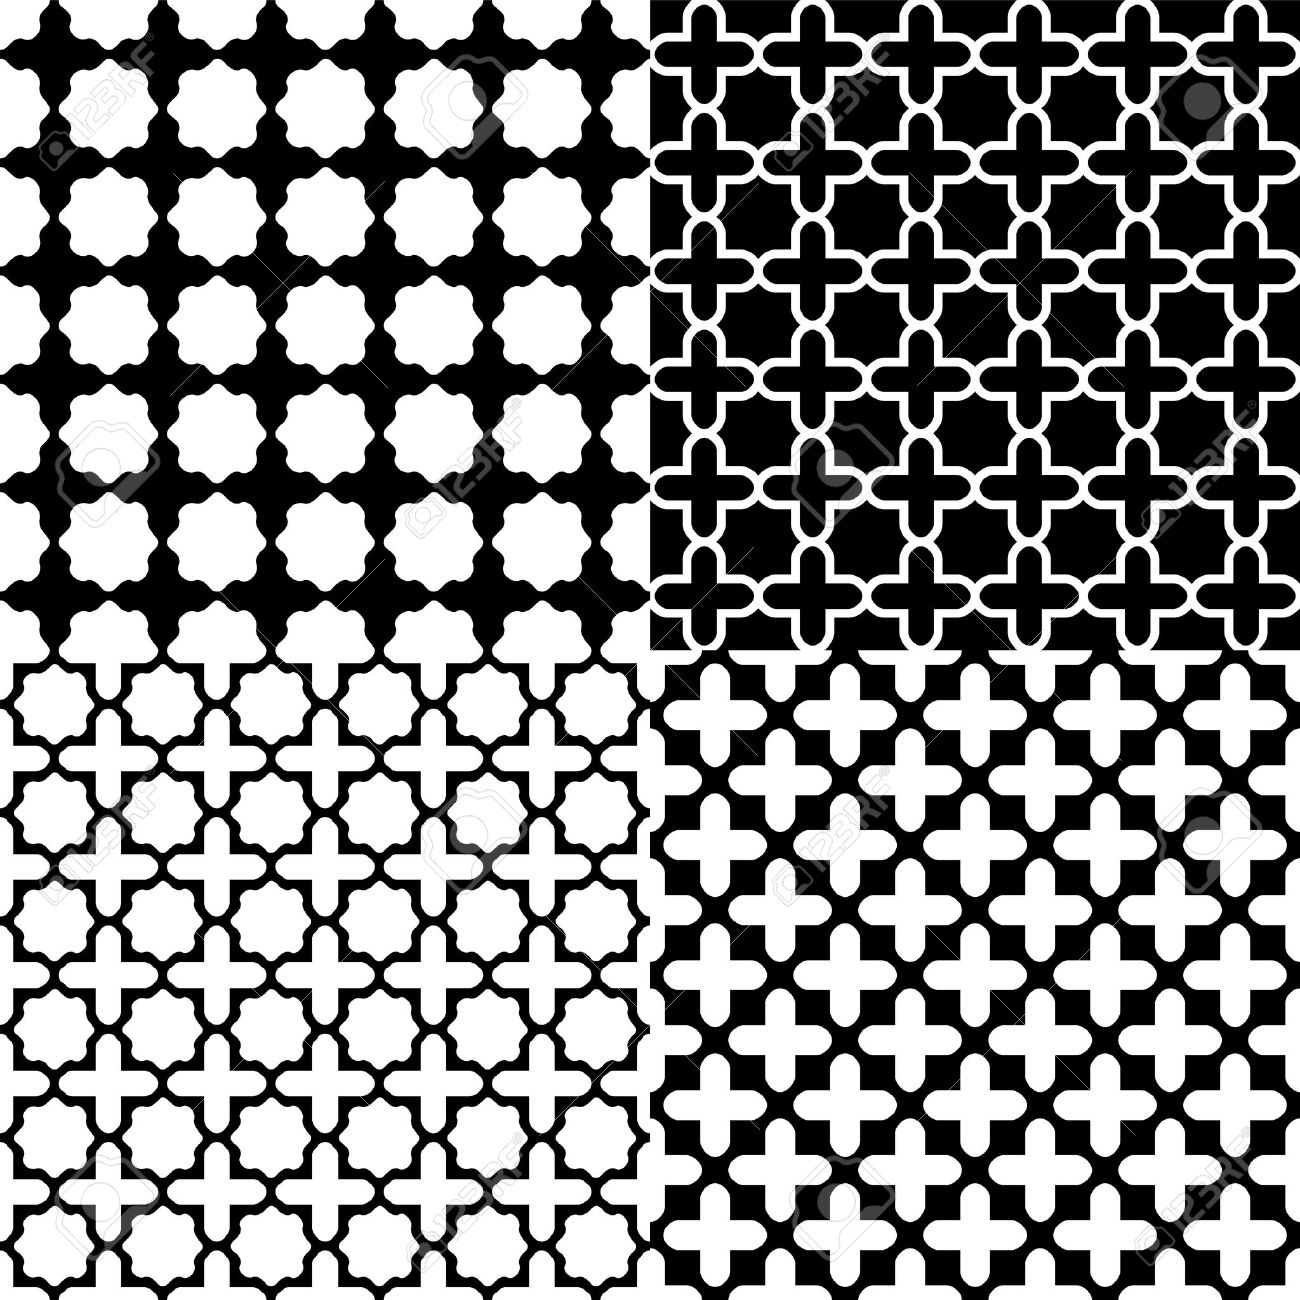 Moroccan patterns clipart clip free Moroccan Black And White Seamless Patterns Set Royalty Free ... clip free